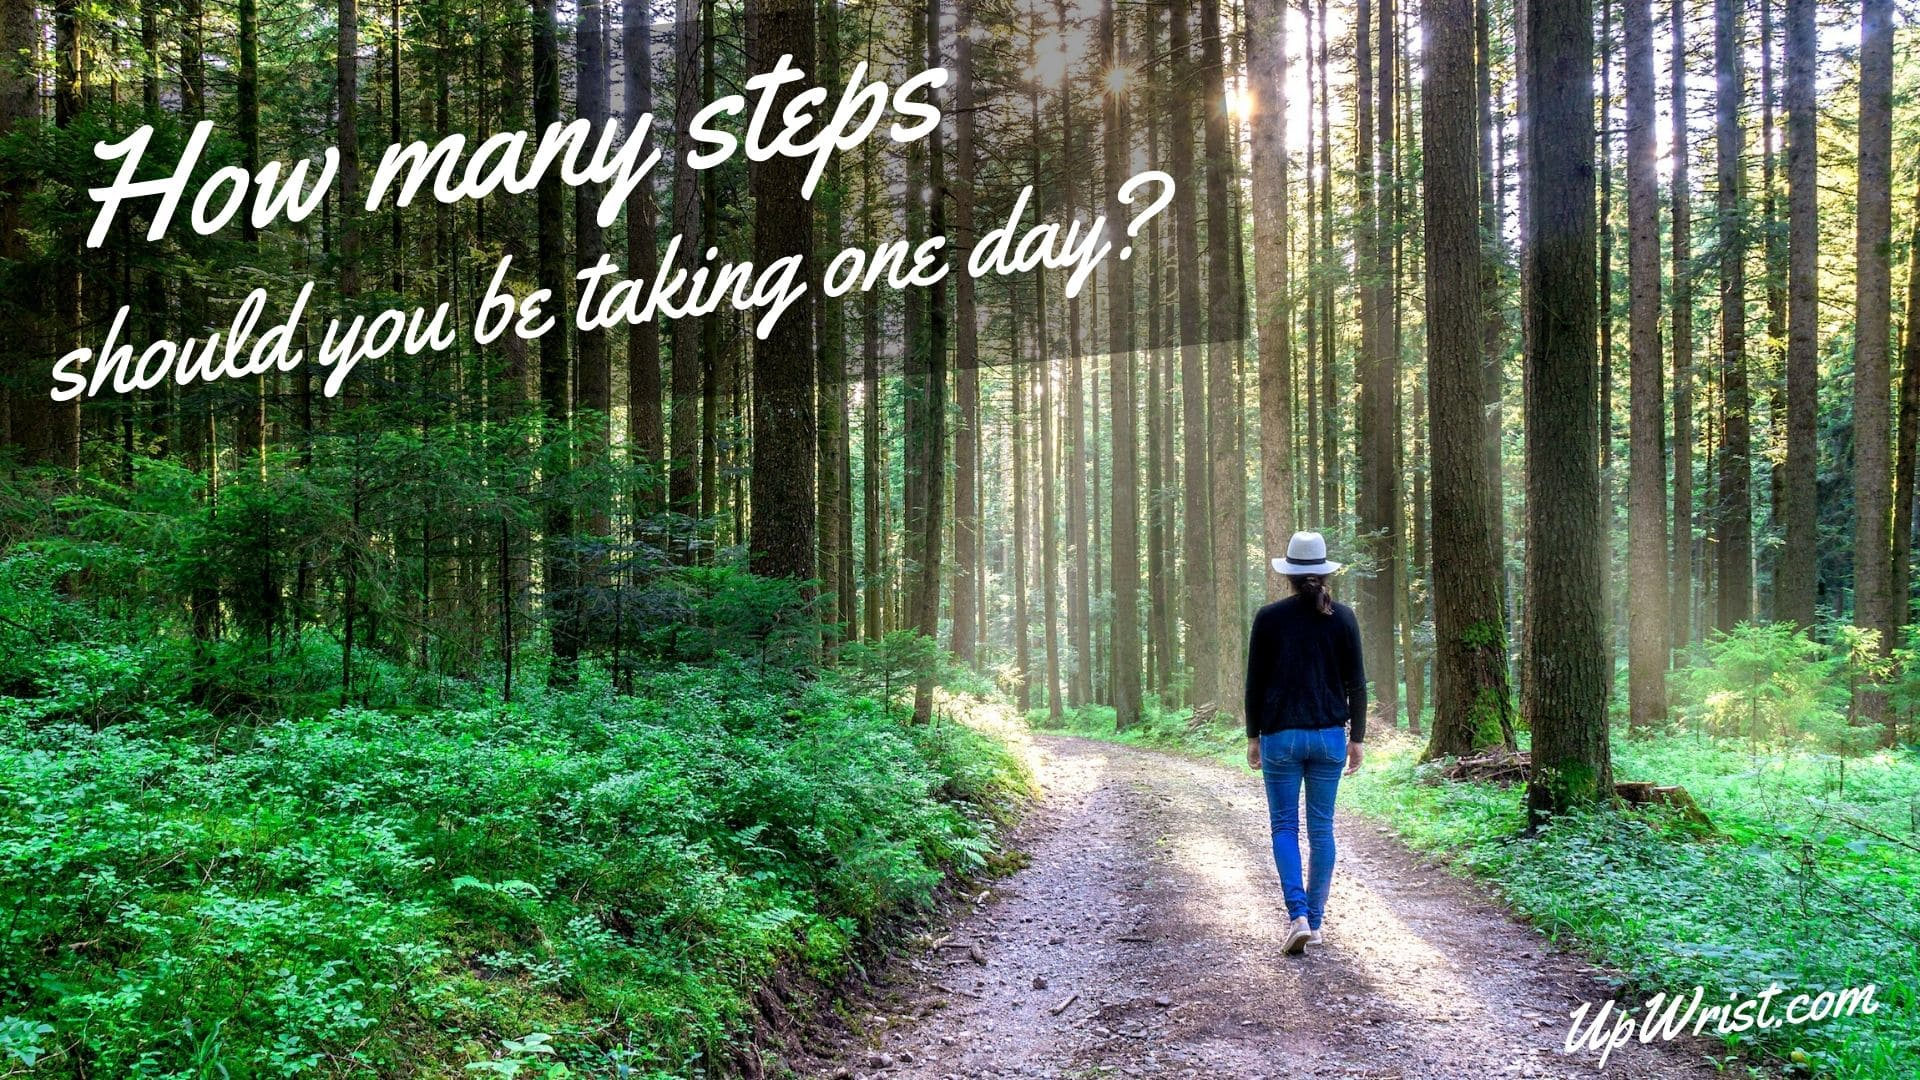 How many steps should you be taking one day?